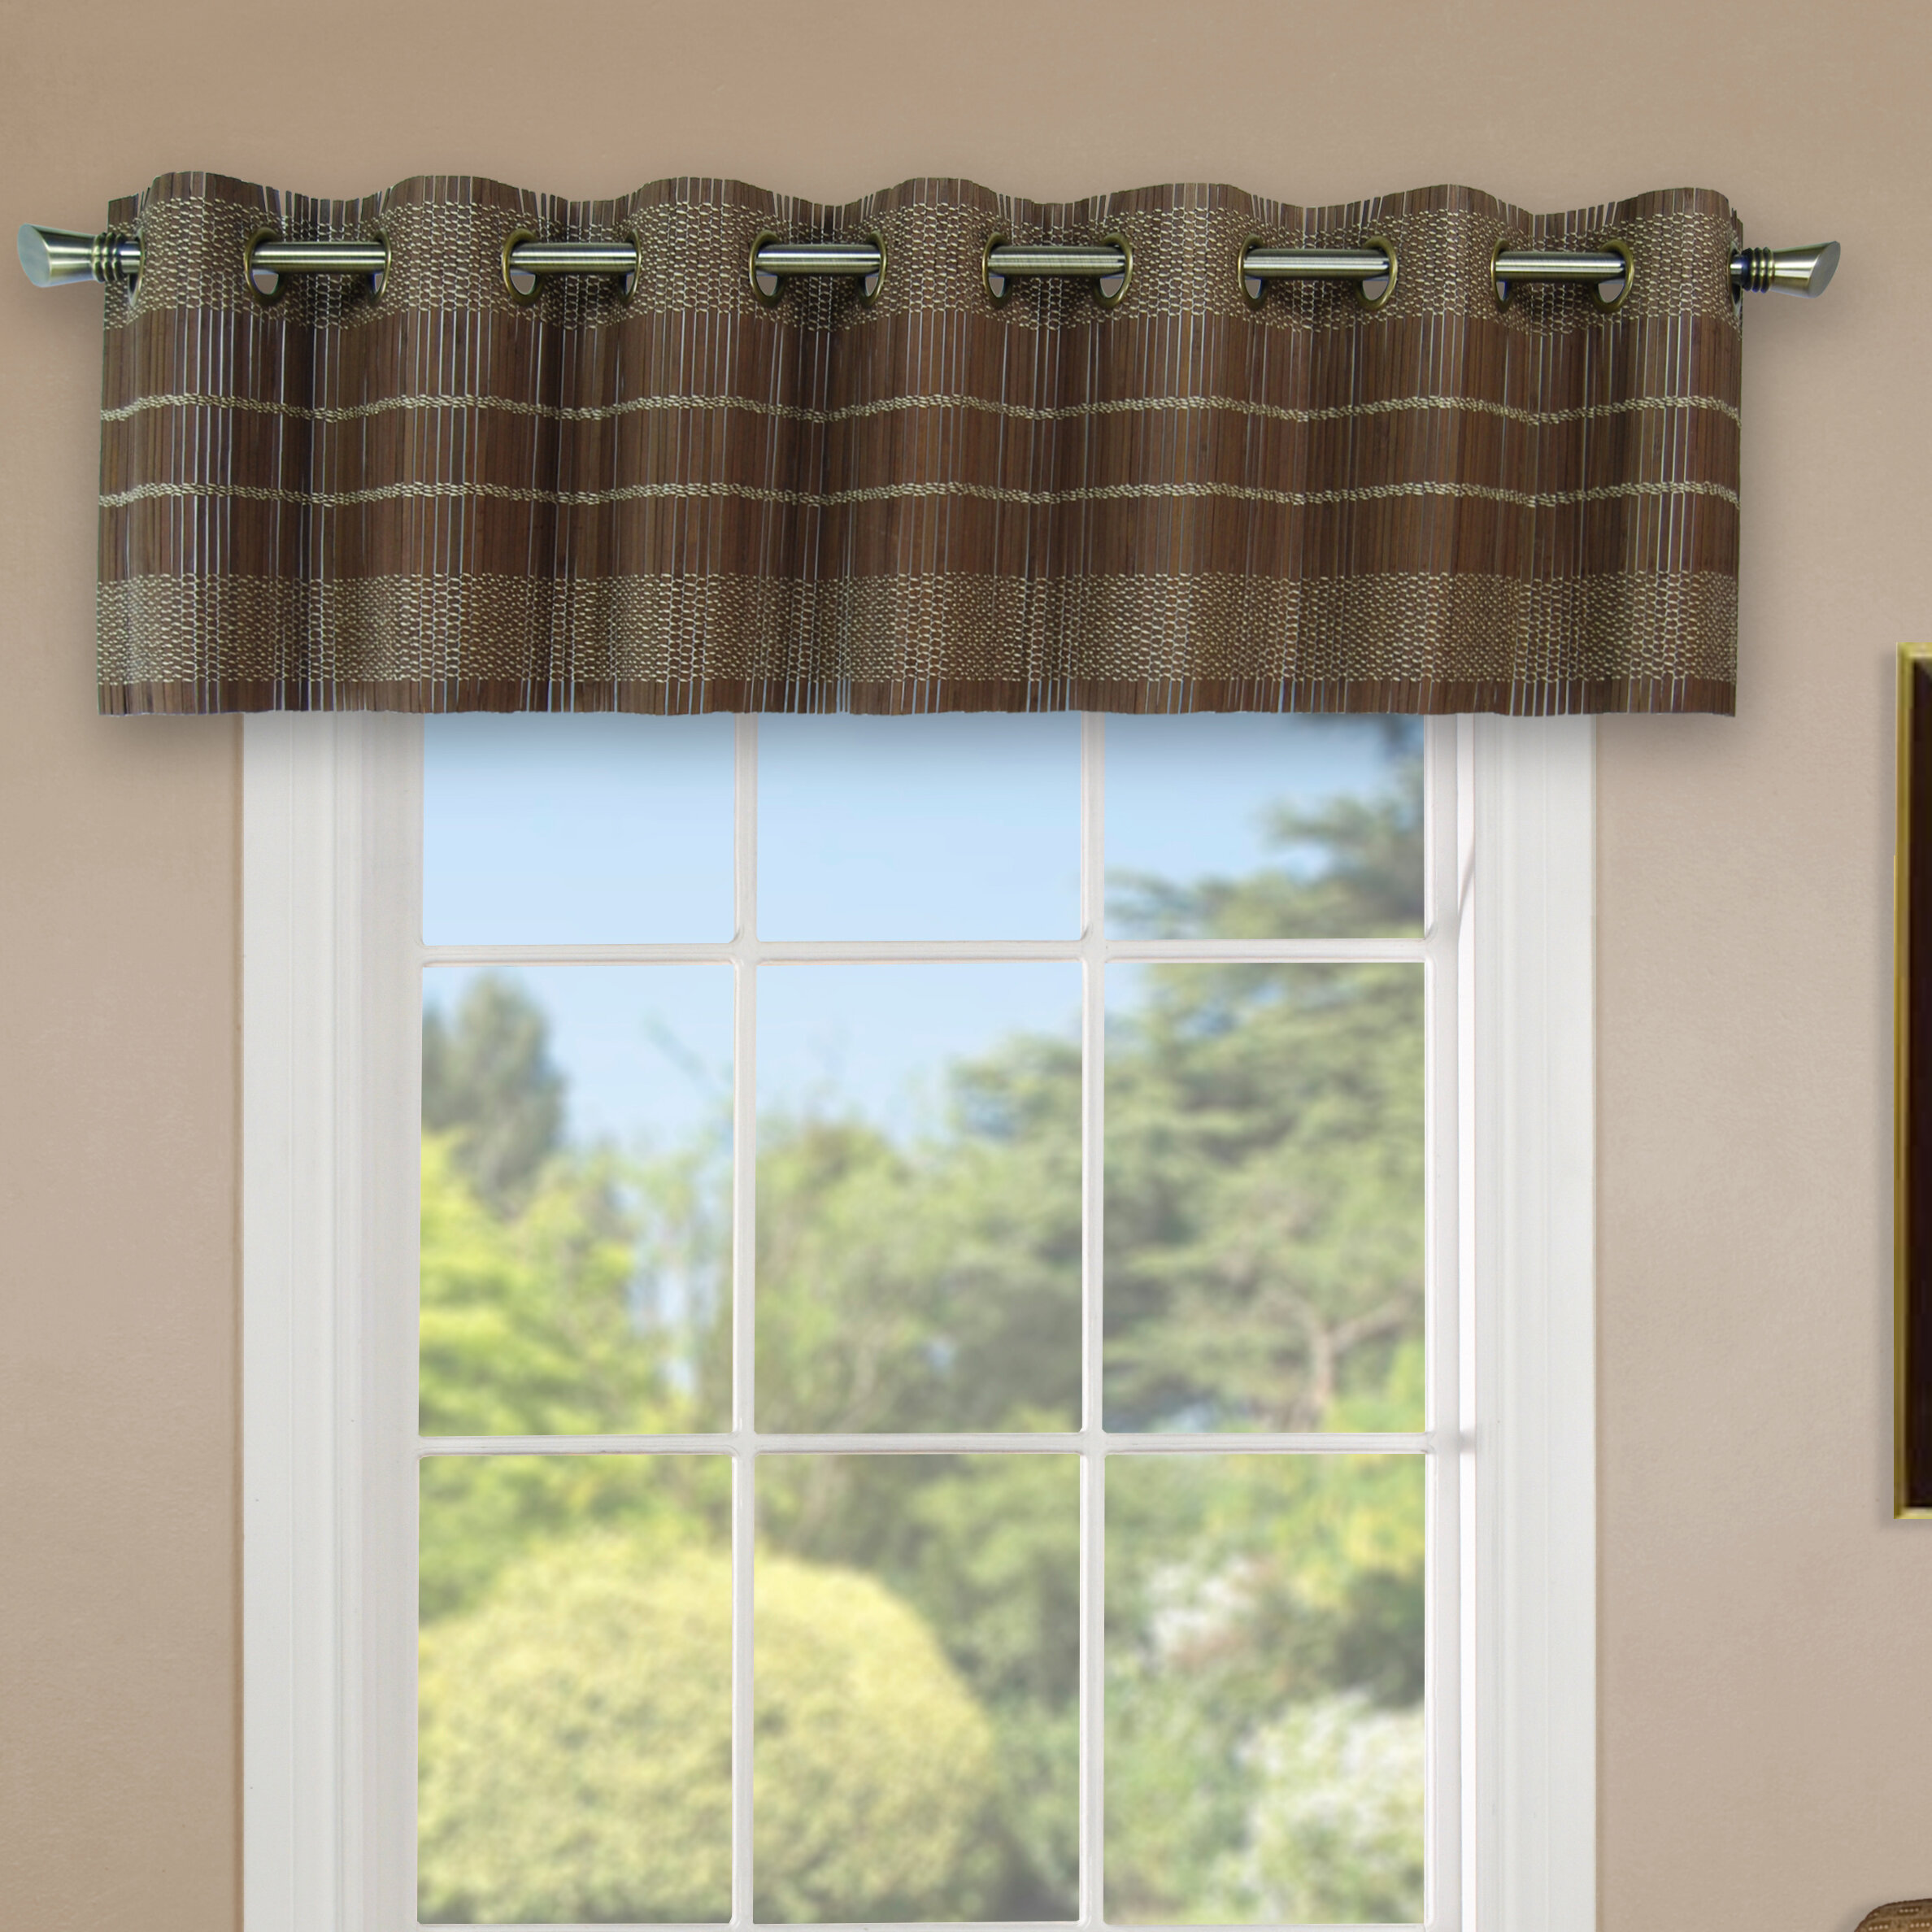 blinds it dorky another a i high does still house and made looks valances topic because short use rods windows little for too the anyone or but with valance are